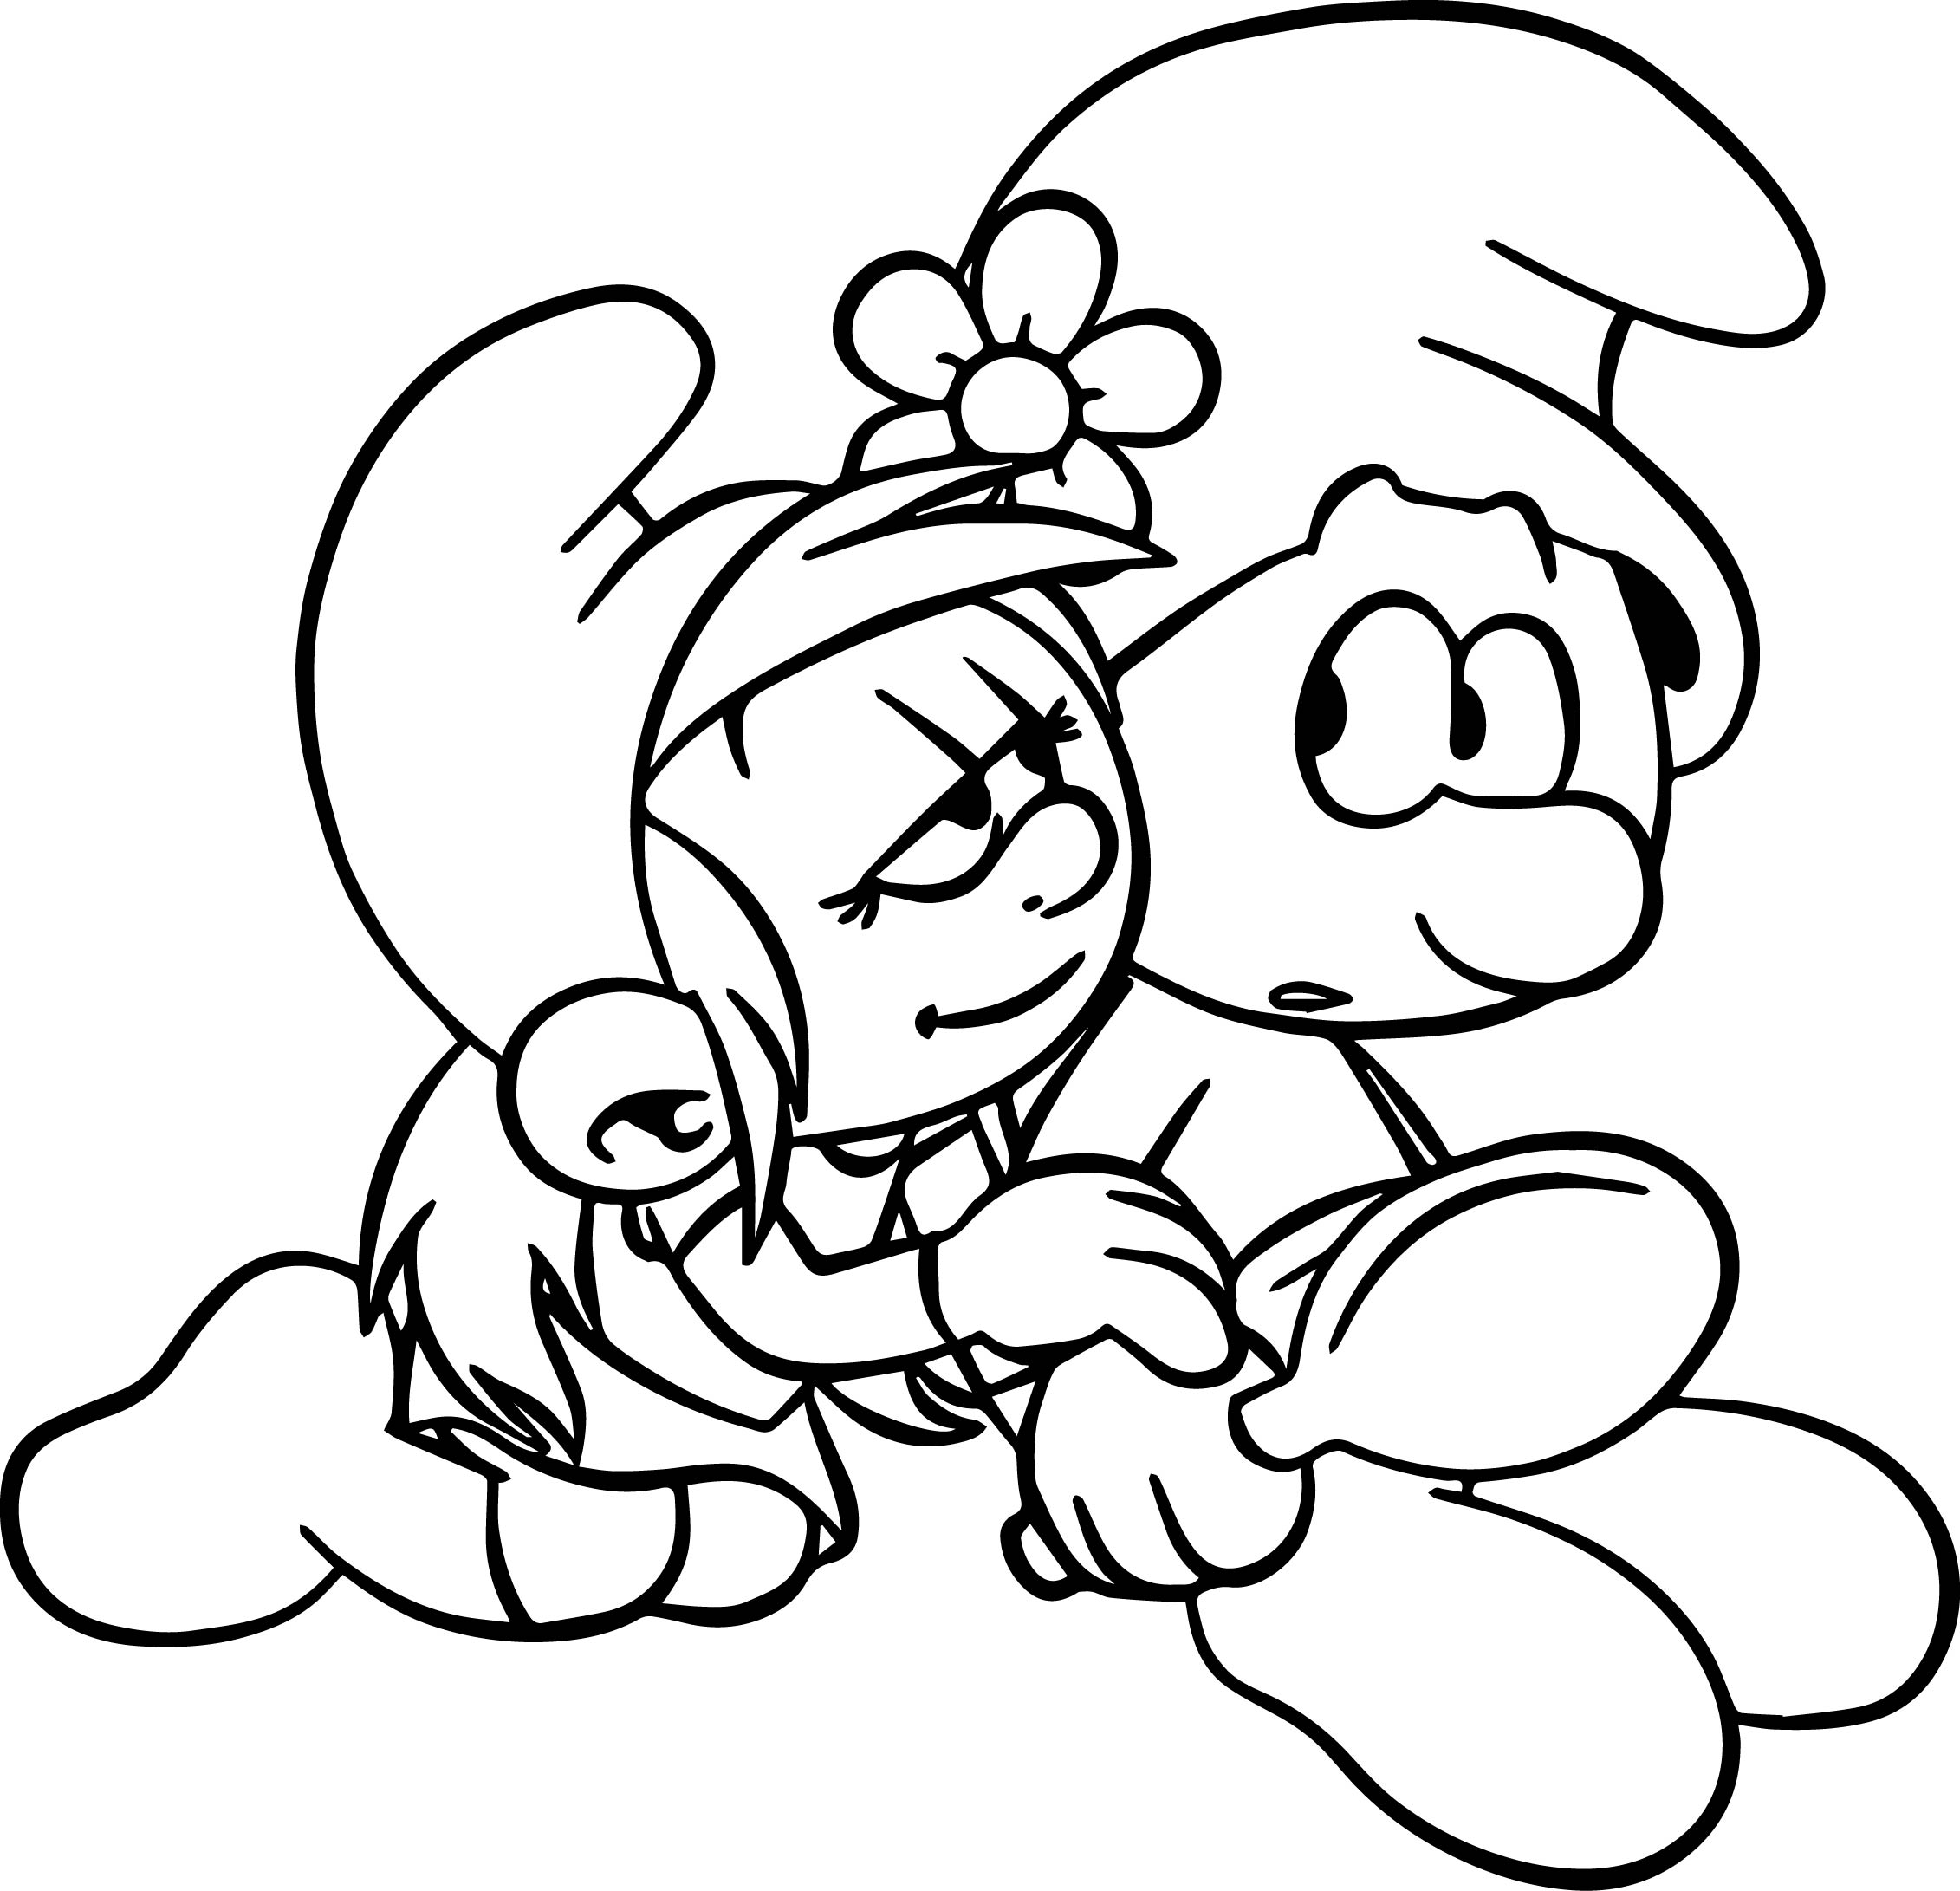 Could You Look At Something Else For A Minute Smurf Coloring Page